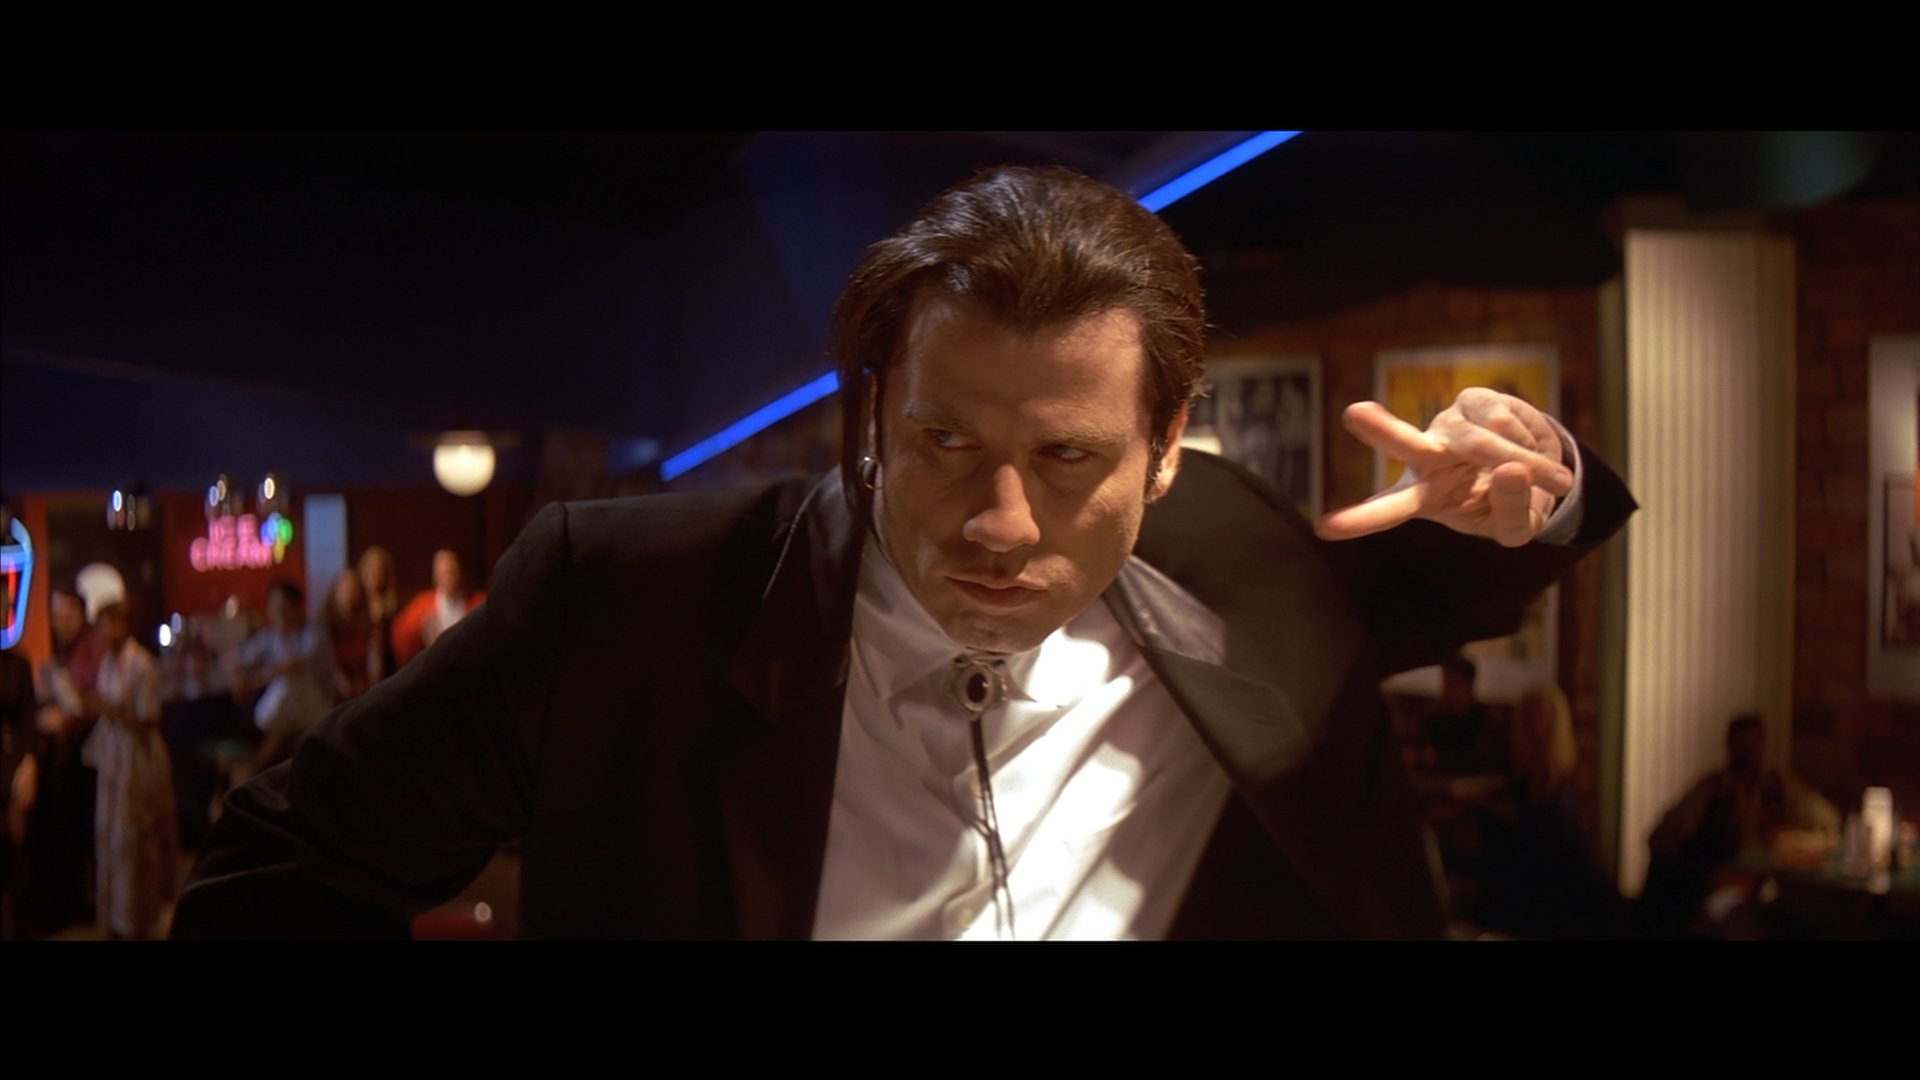 John Travolta Pulp Fiction Dance wallpaper 96867 1920x1080